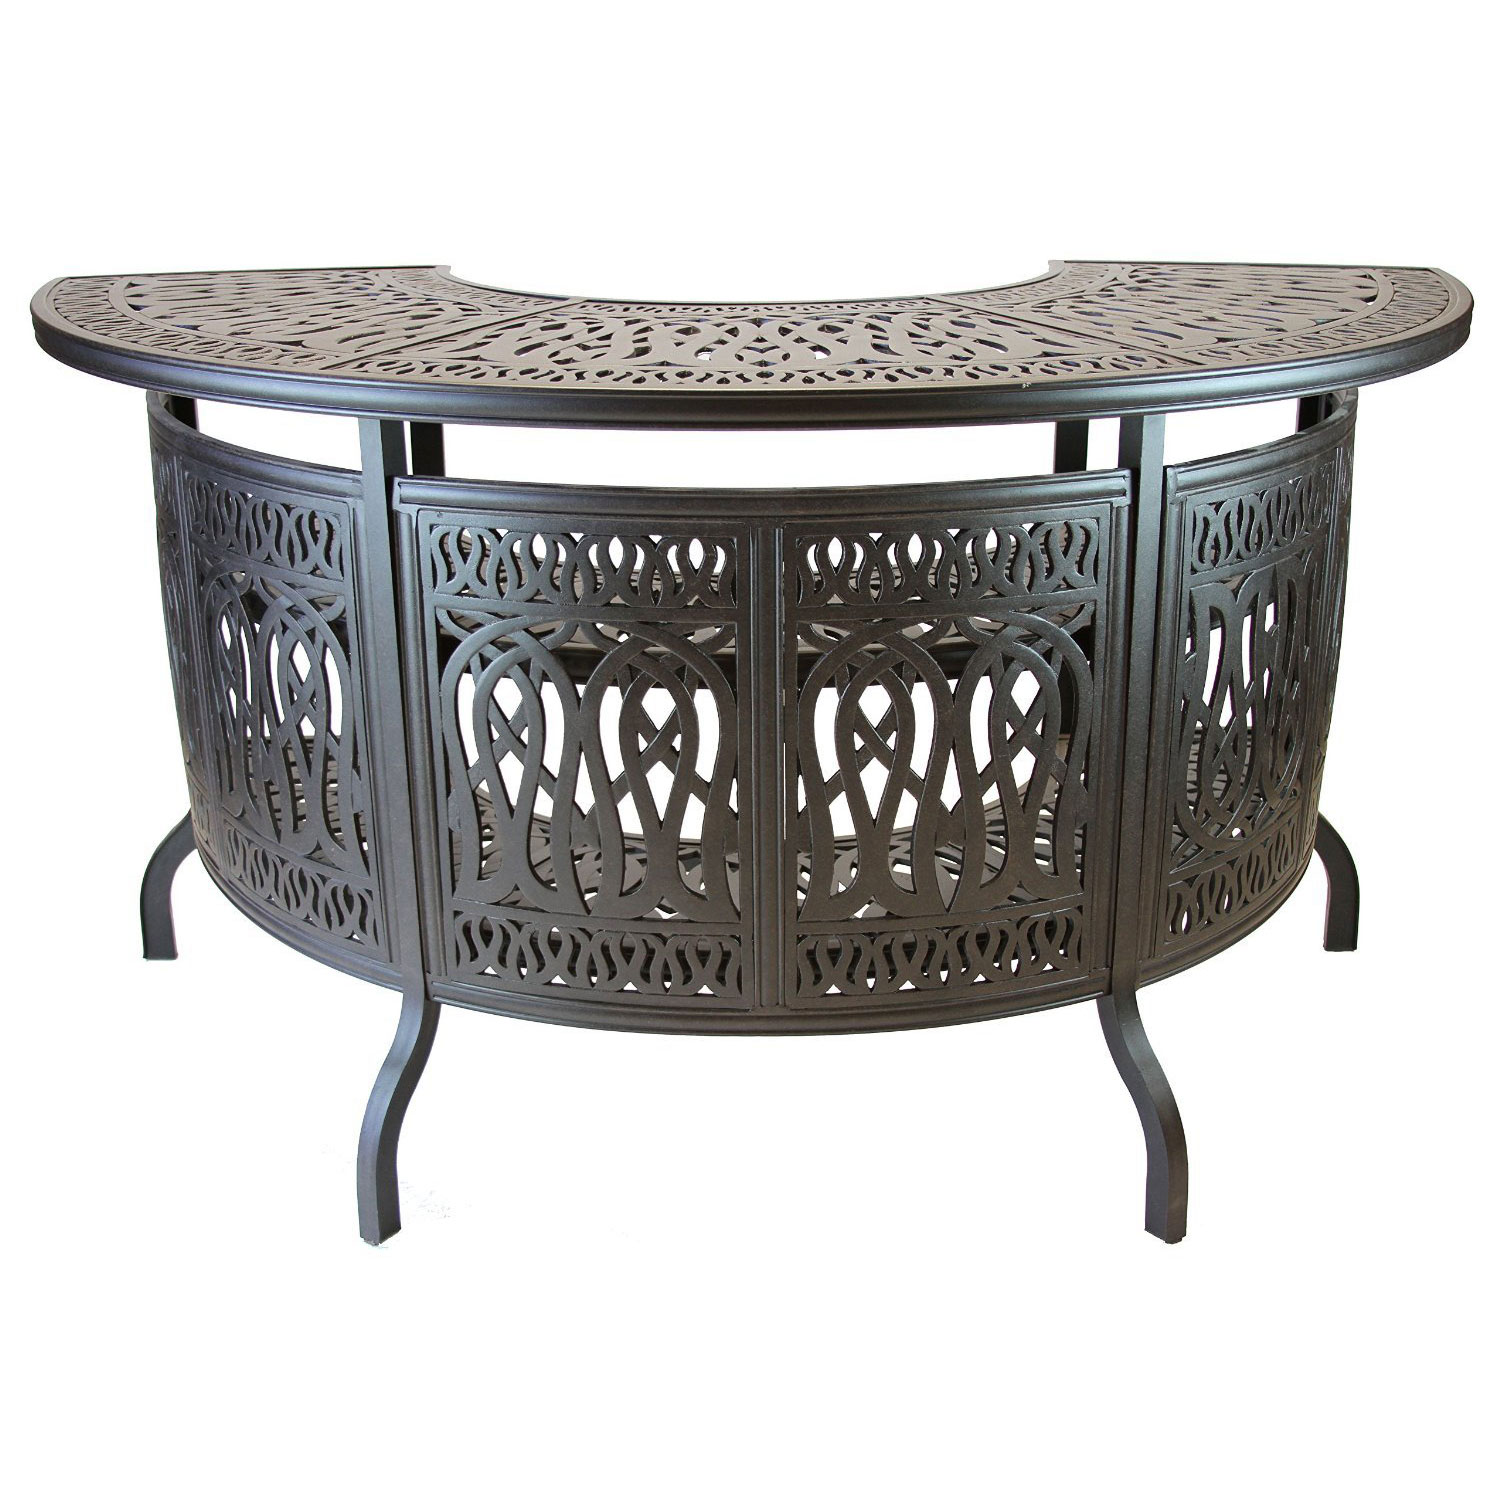 cast-aluminum-table-outdoor-bars-BLOG0619.jpg